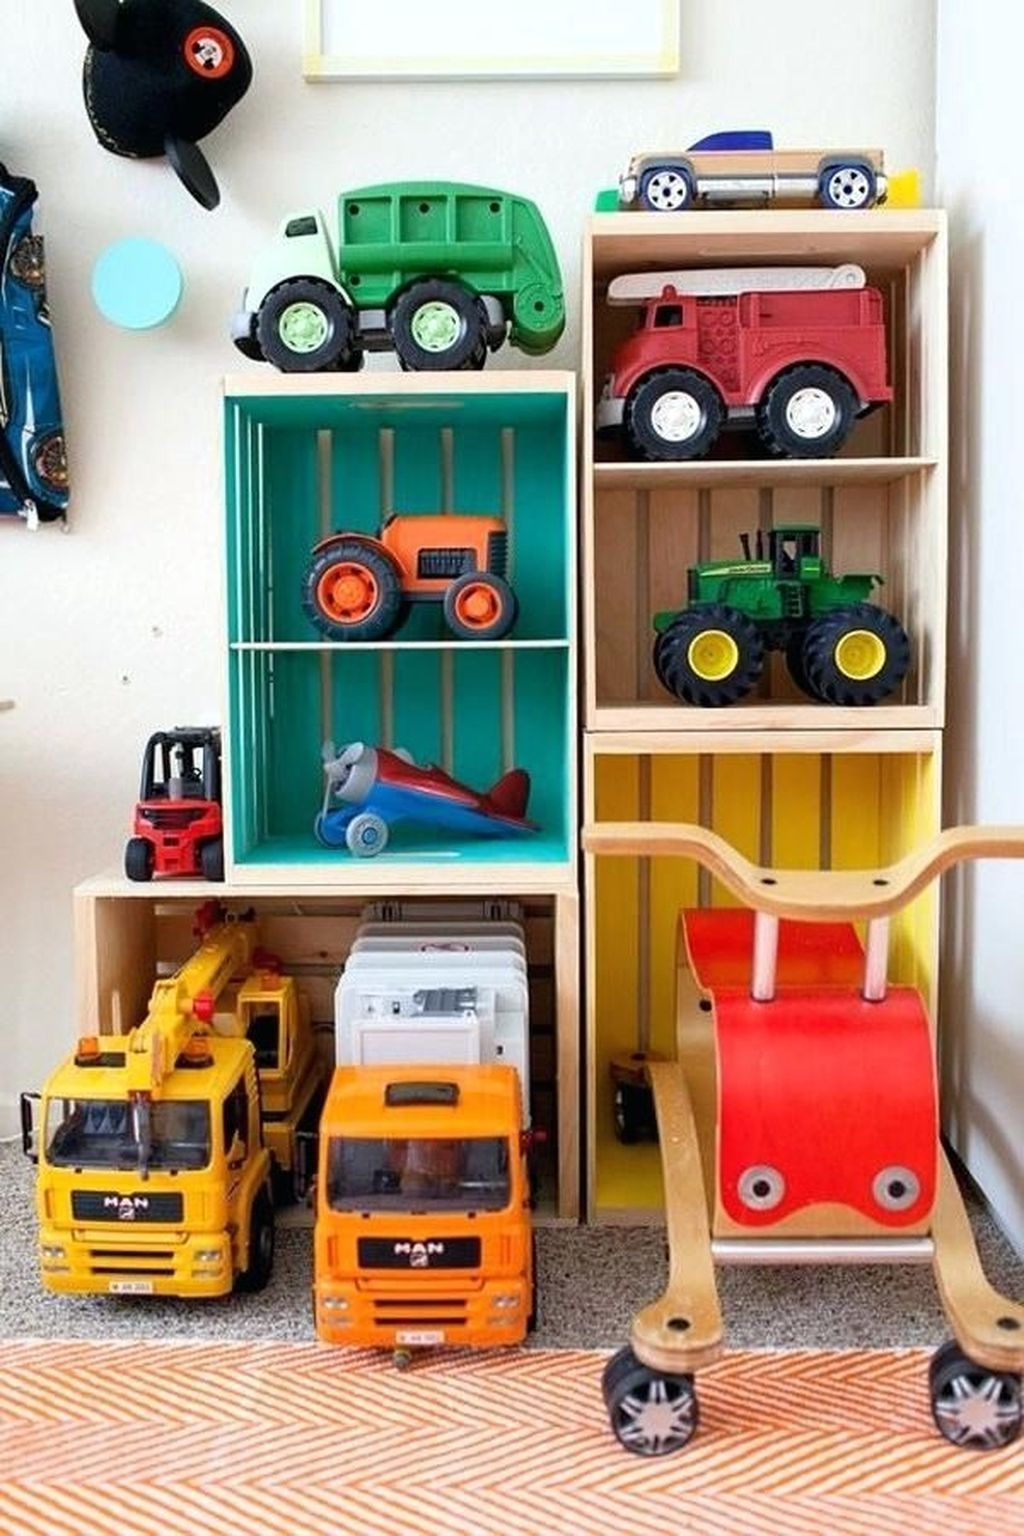 20 Brilliant Toy Storage Ideas For Small Space Playroom